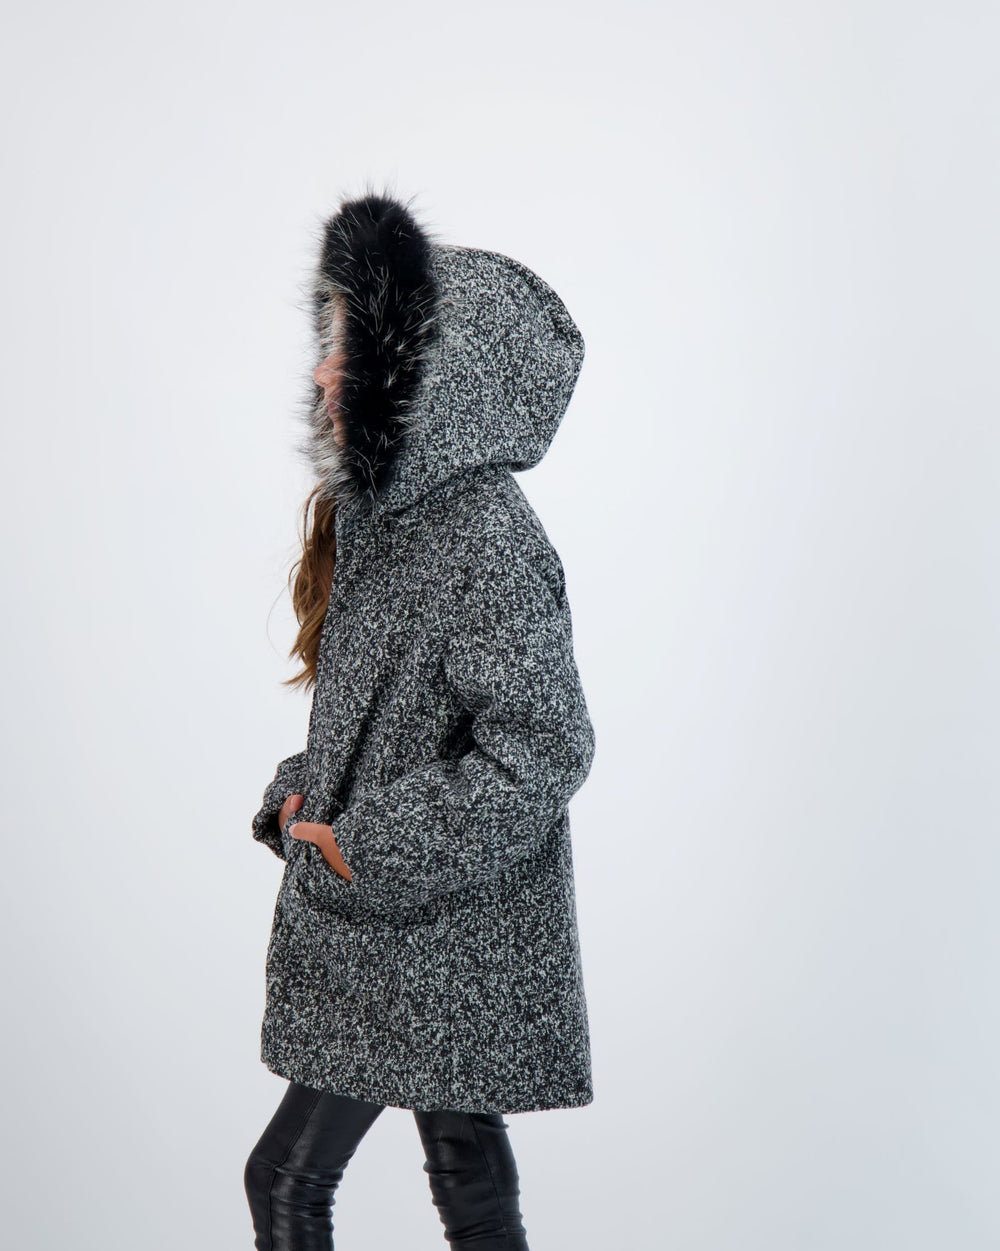 Scotch Bonnet Scotch Bonnet Black Speckled Wool Coat  JellyBeanz Kids